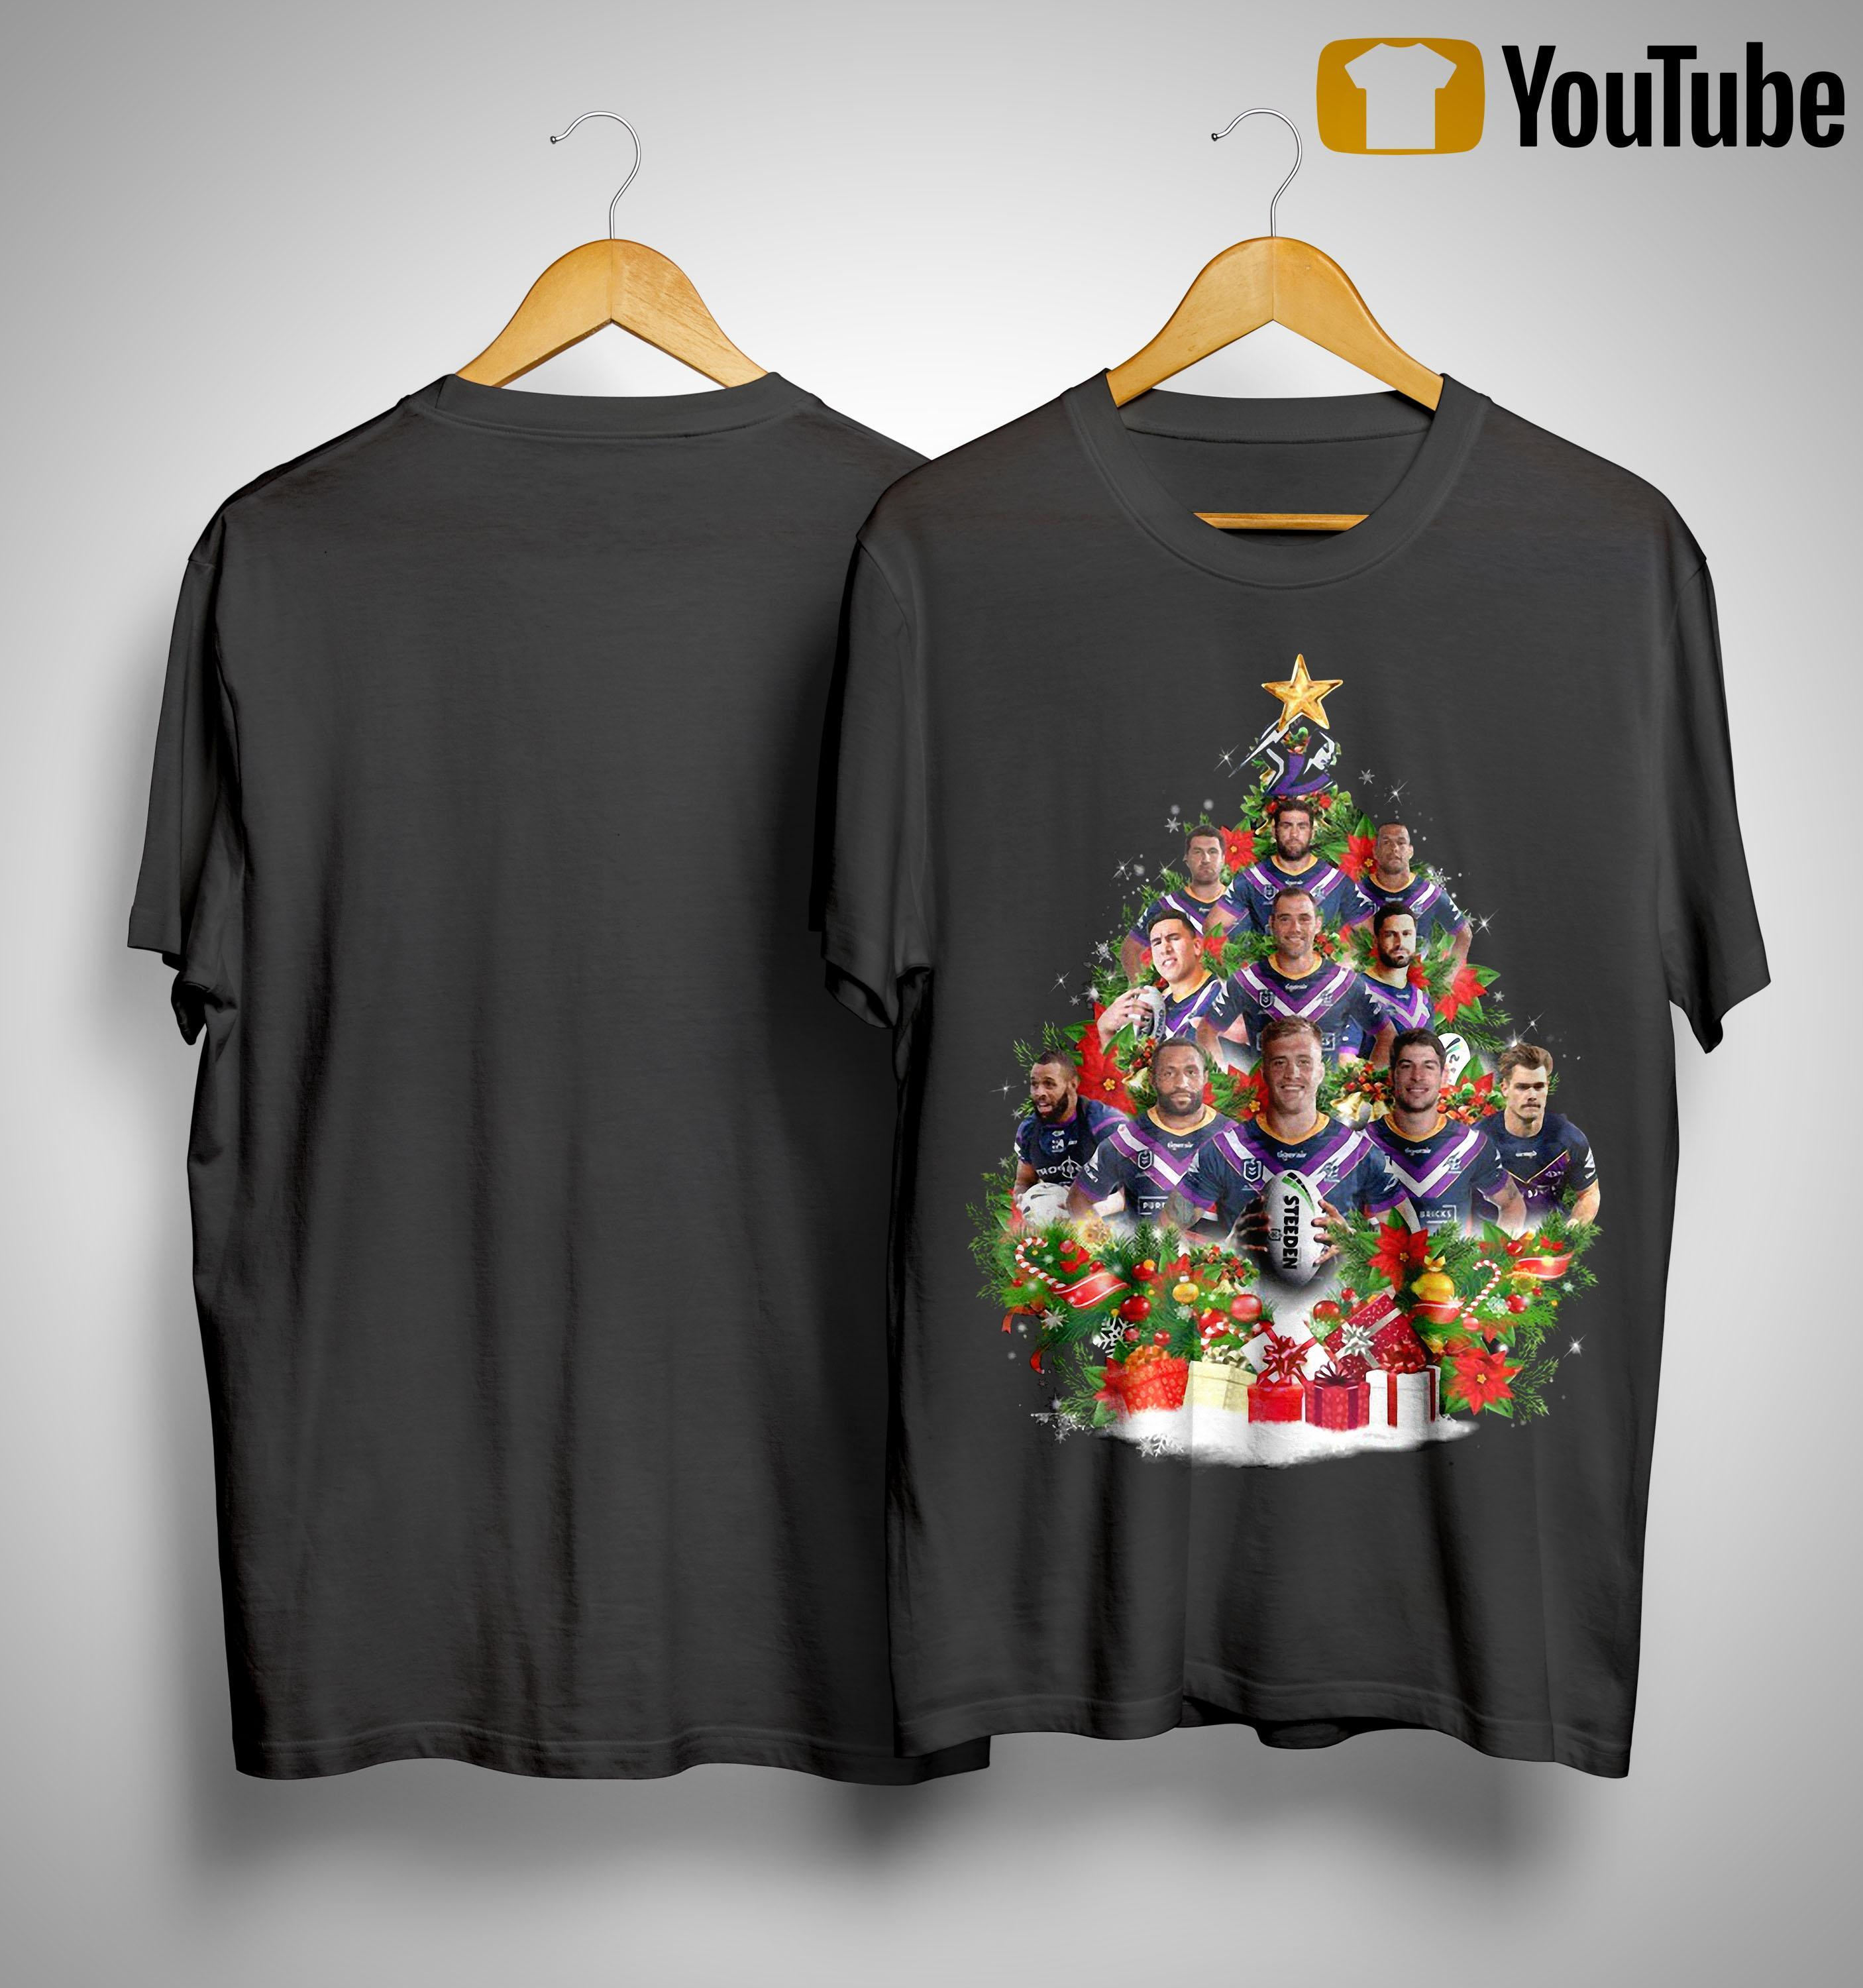 Christmas Trees Melbourne: Melbourne Storm Christmas Tree Shirt, Sweater And Hoodie